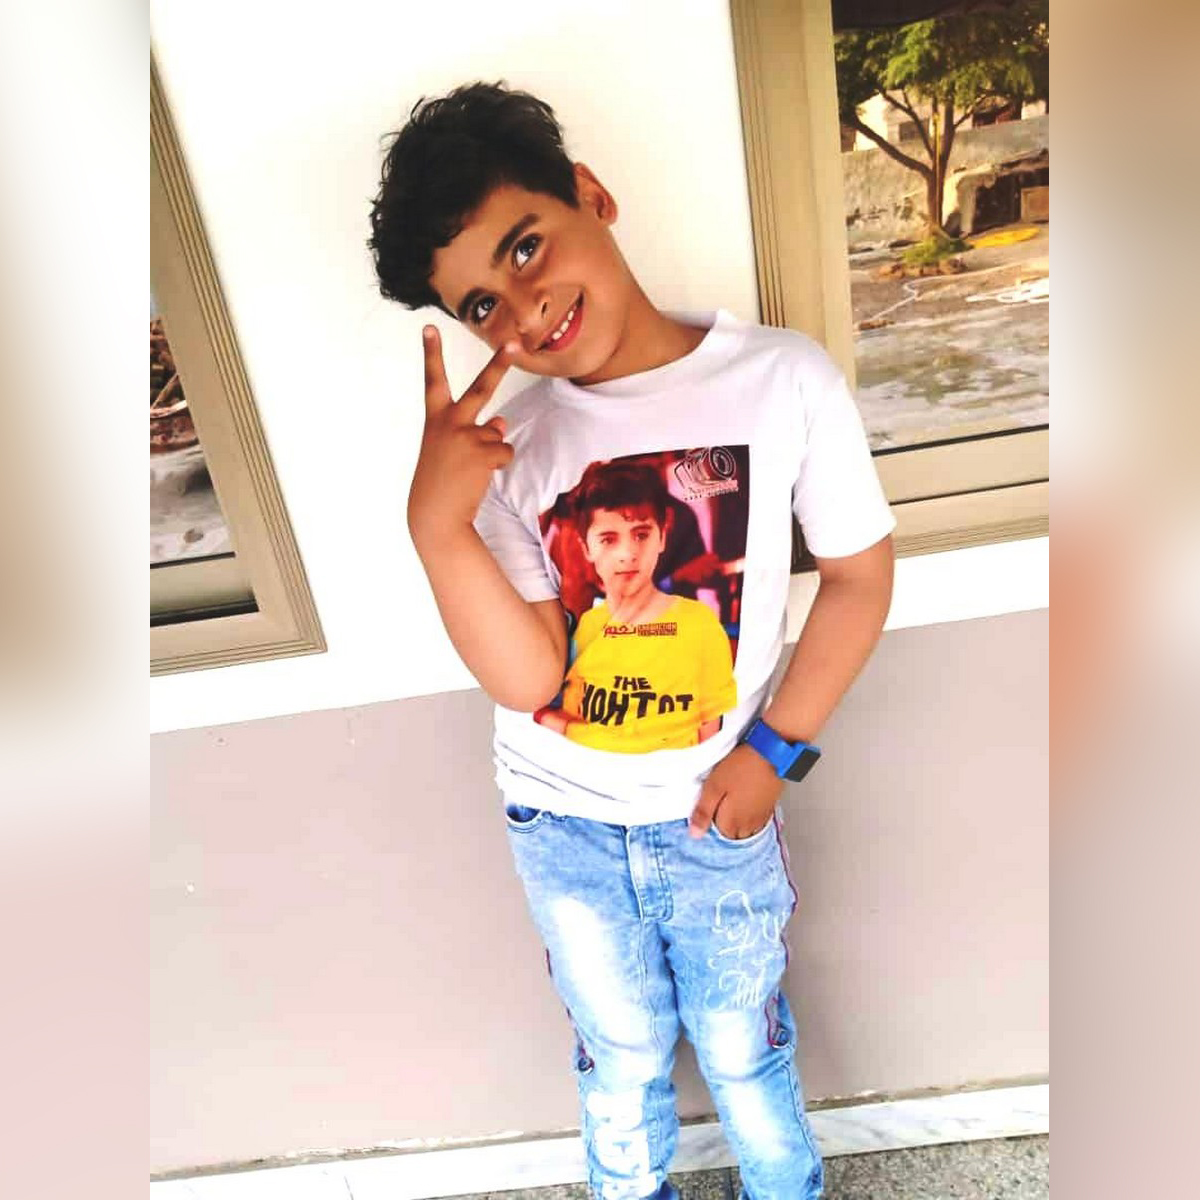 Customized T Shirt for Boys - Print your own Photo & Name